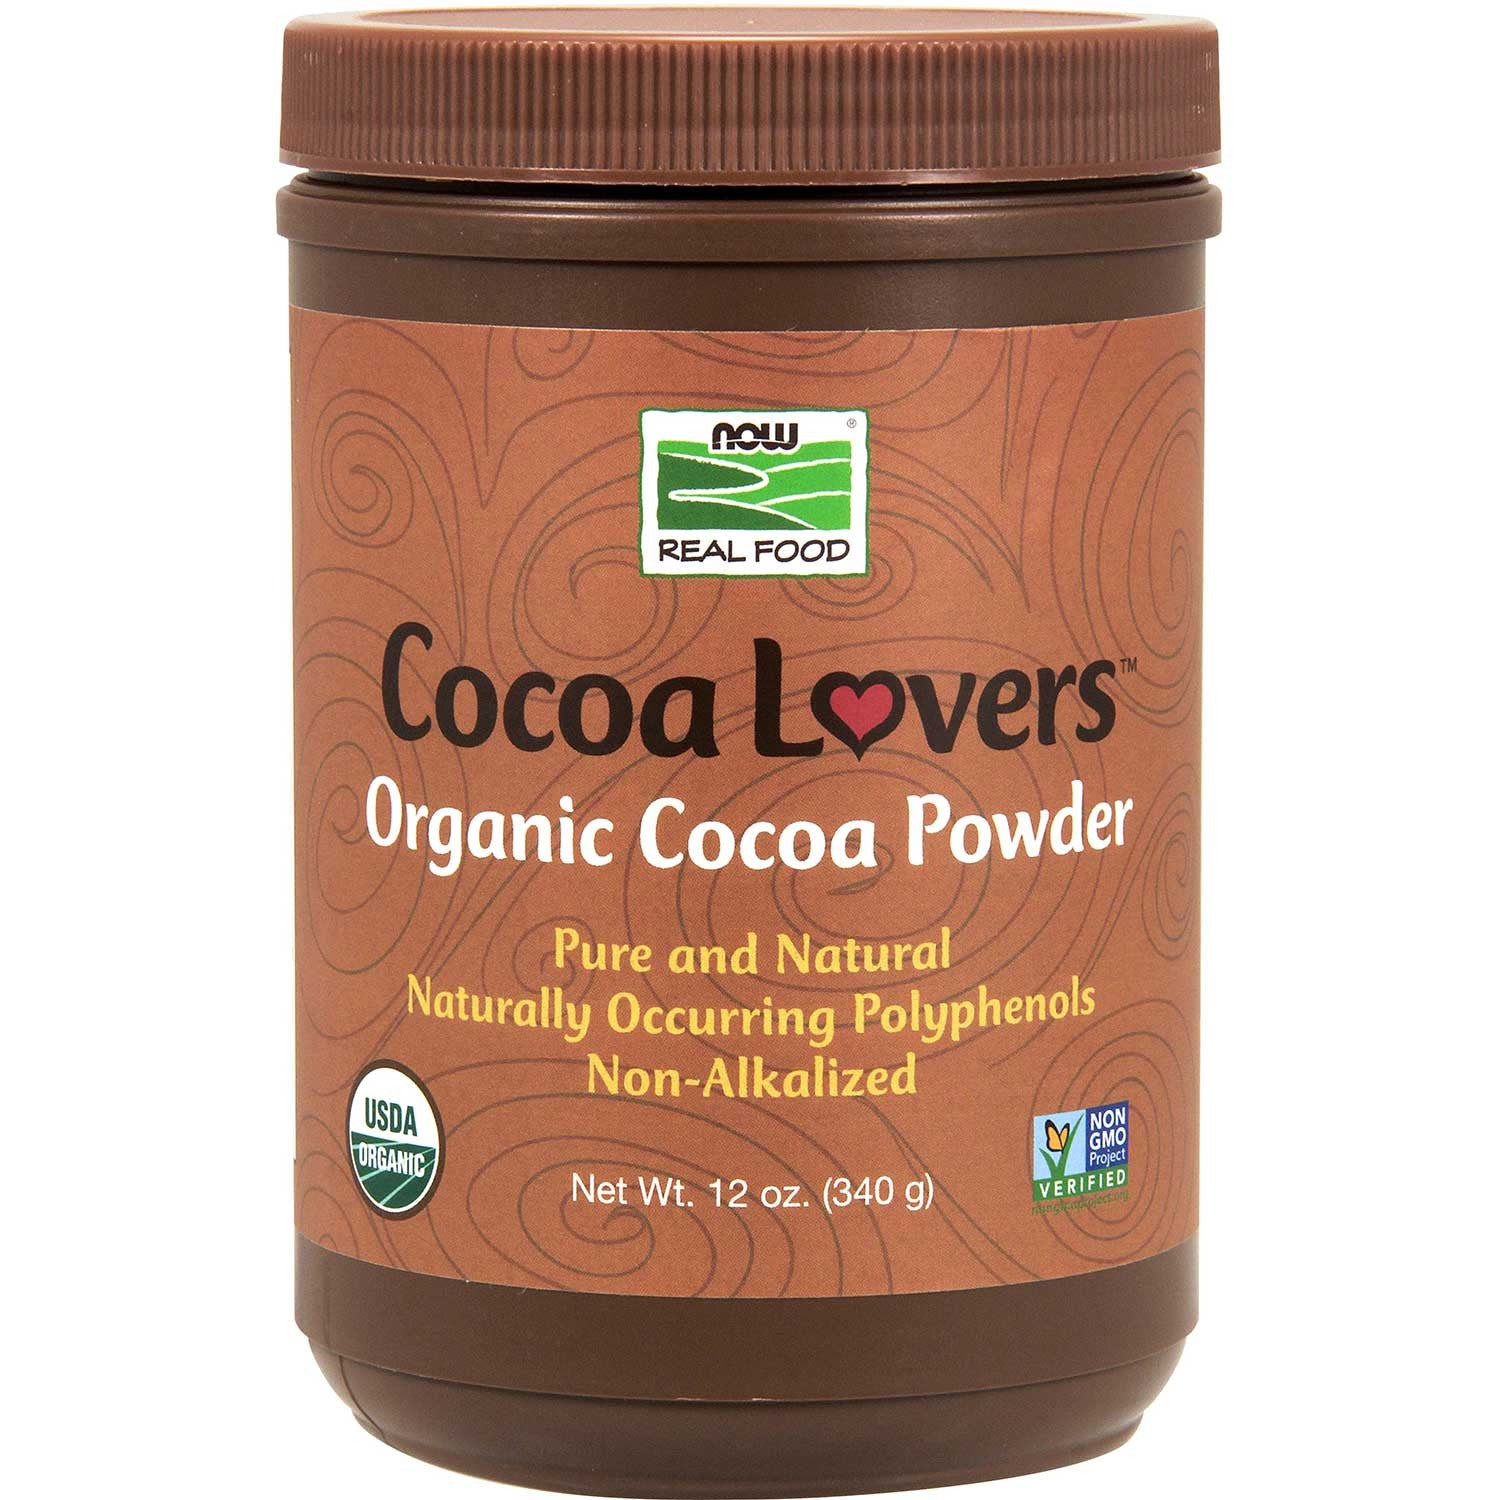 NOW Organic Cocoa Powder - Unsweetened, 340 g.-NaturesWisdom